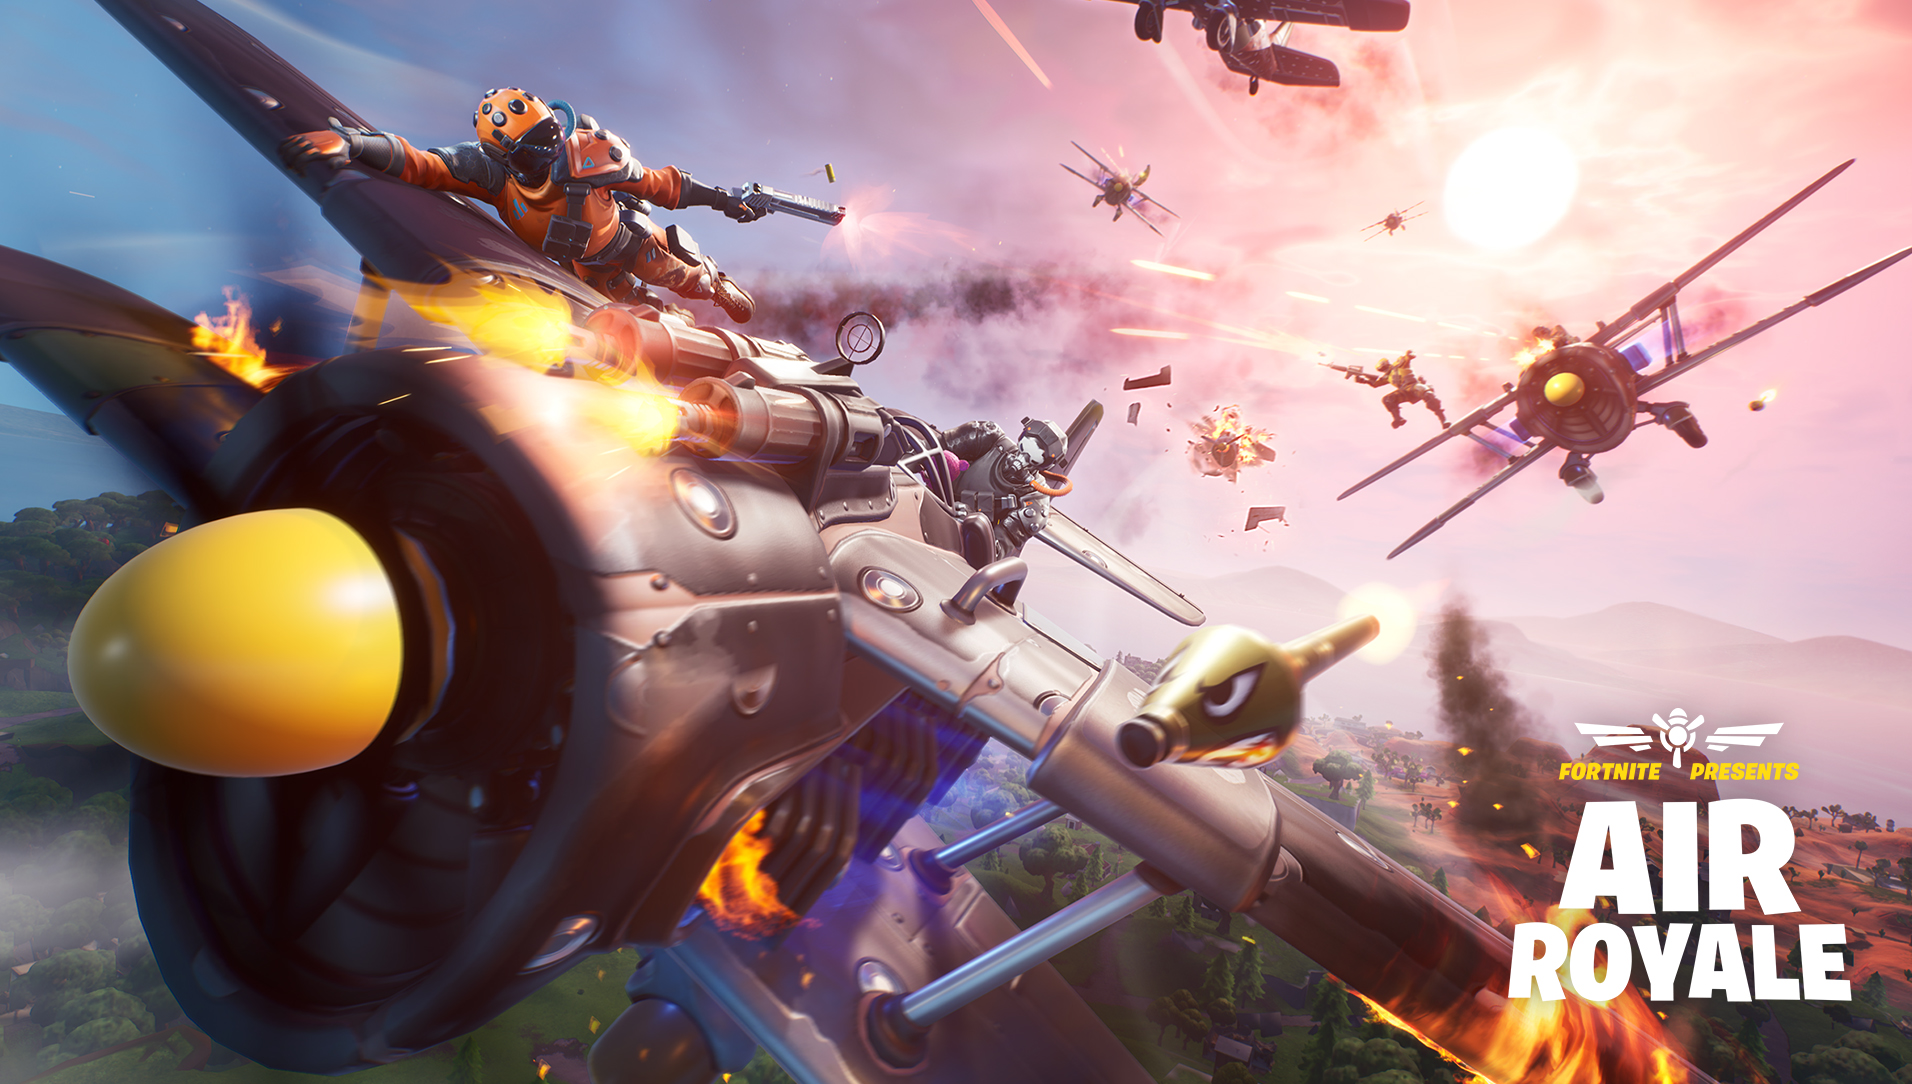 Fortnite 8.40 Patch Notes Released - Includes New Air ...